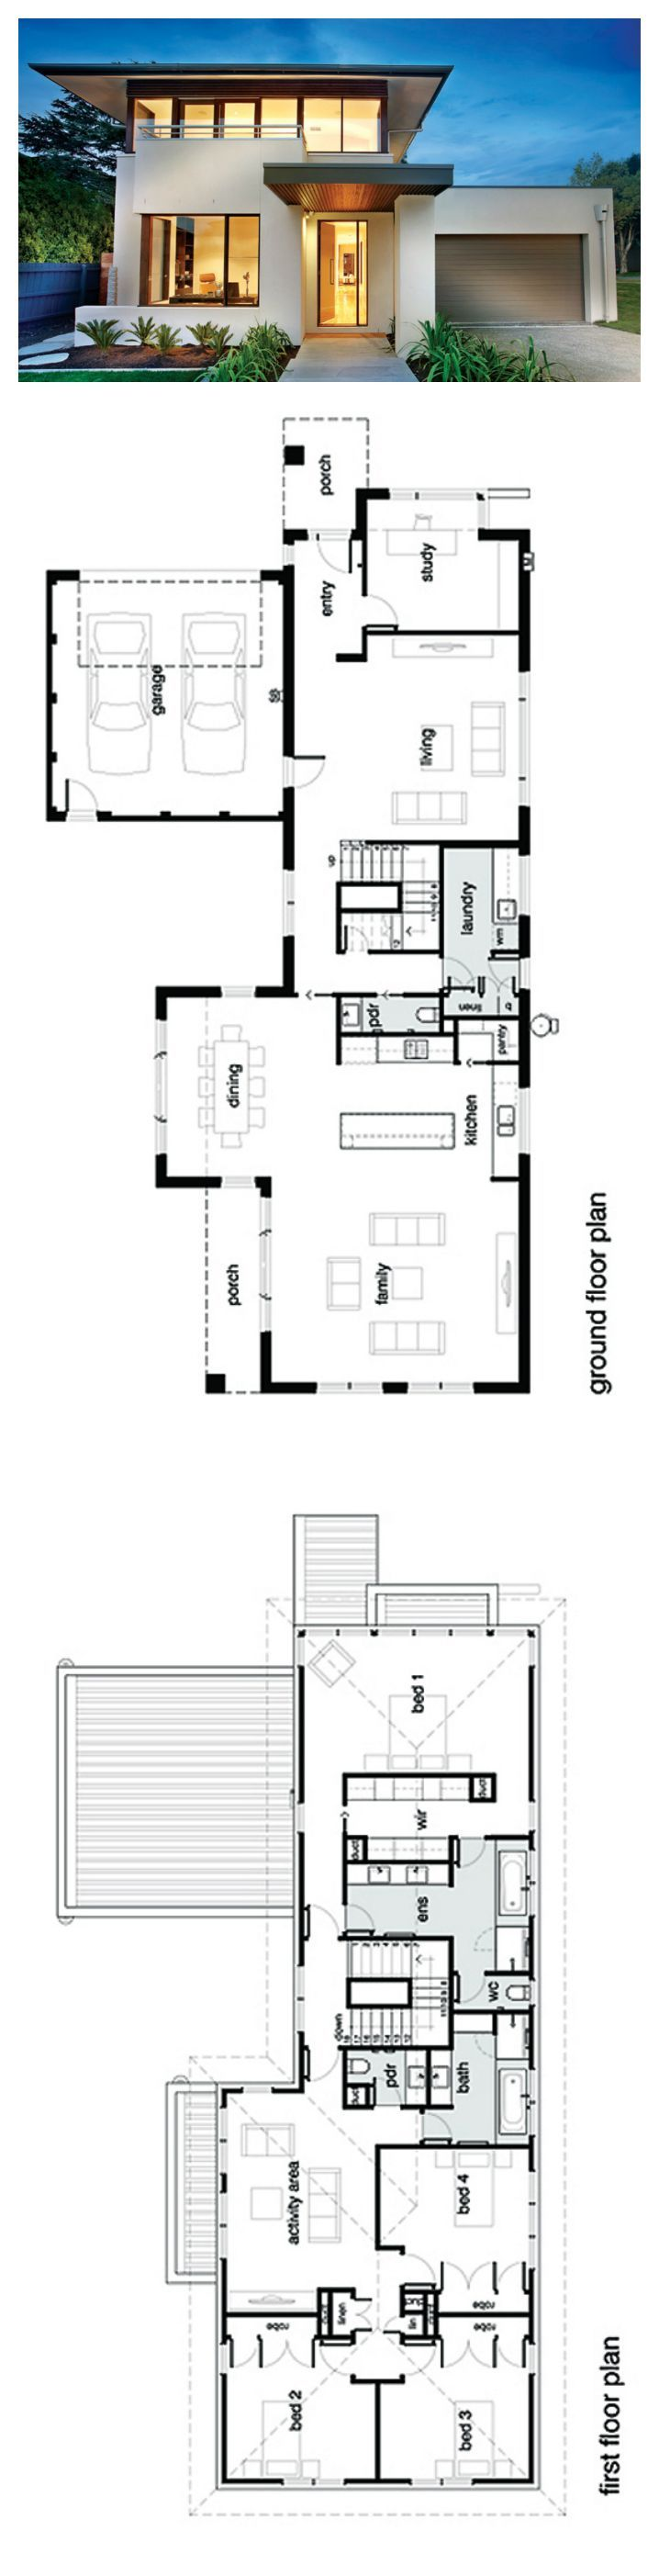 Best 25 modern house plans ideas on pinterest modern for 2 level house design